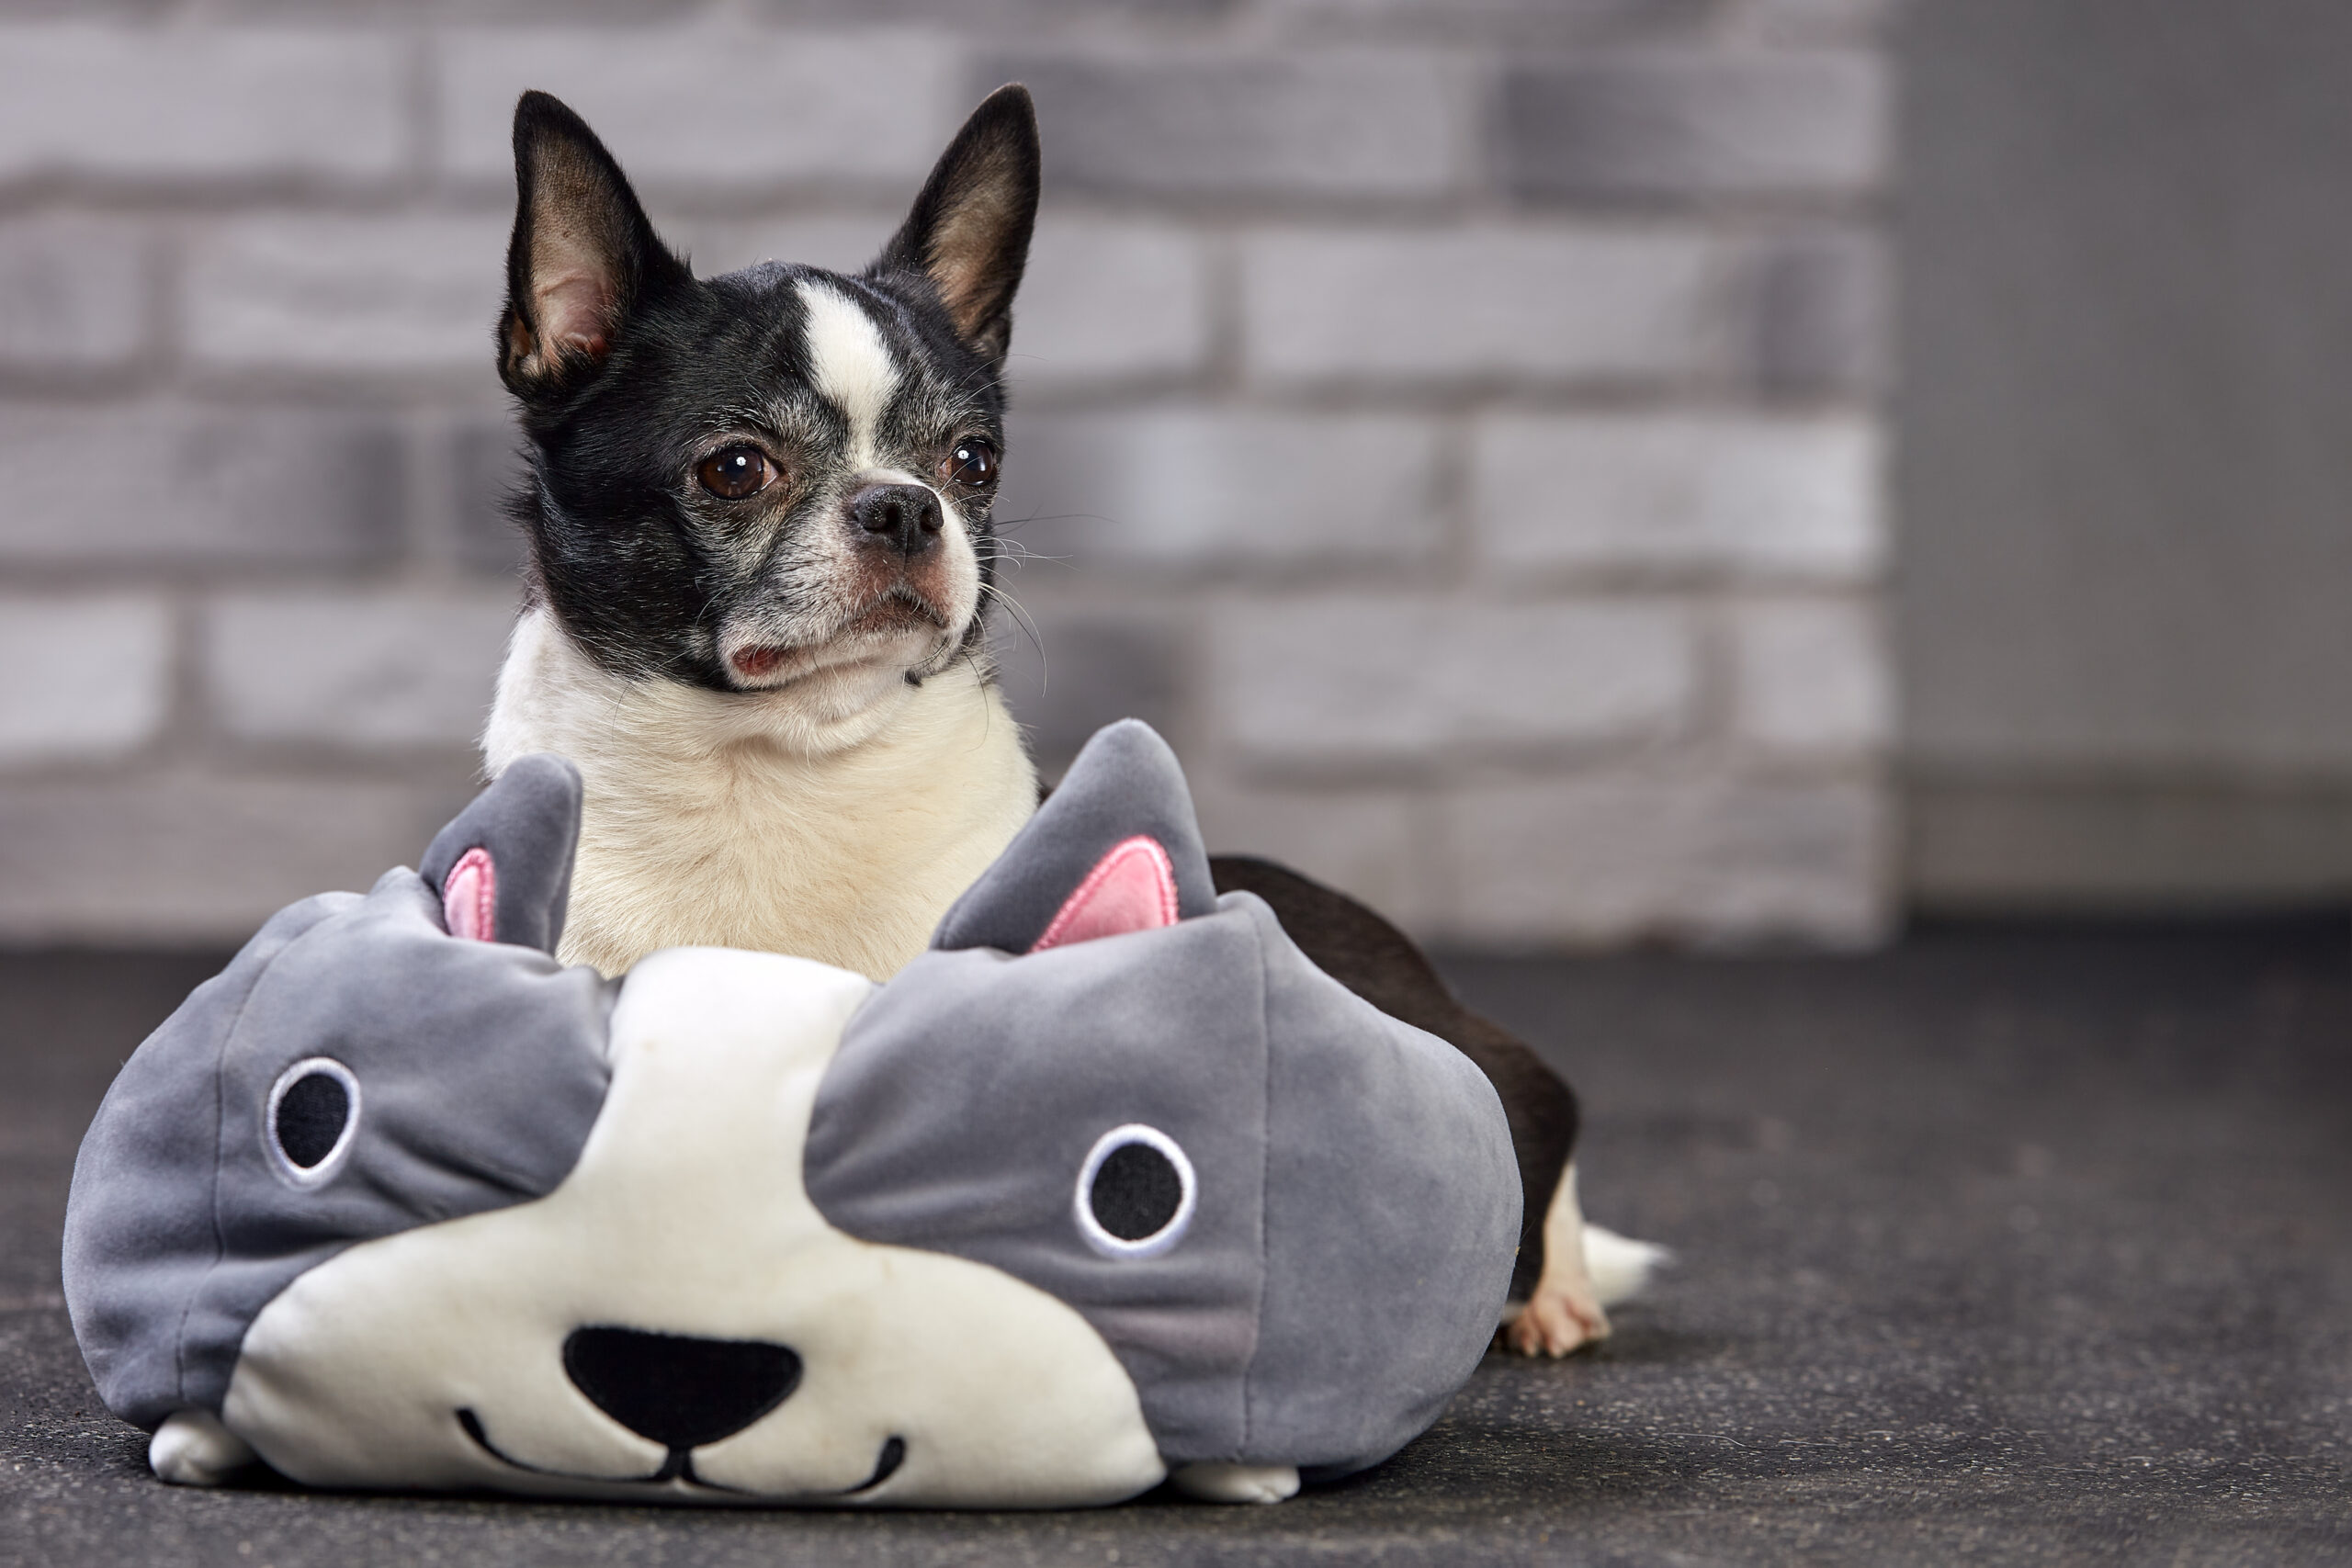 The Best Types of Toys for Chihuahuas